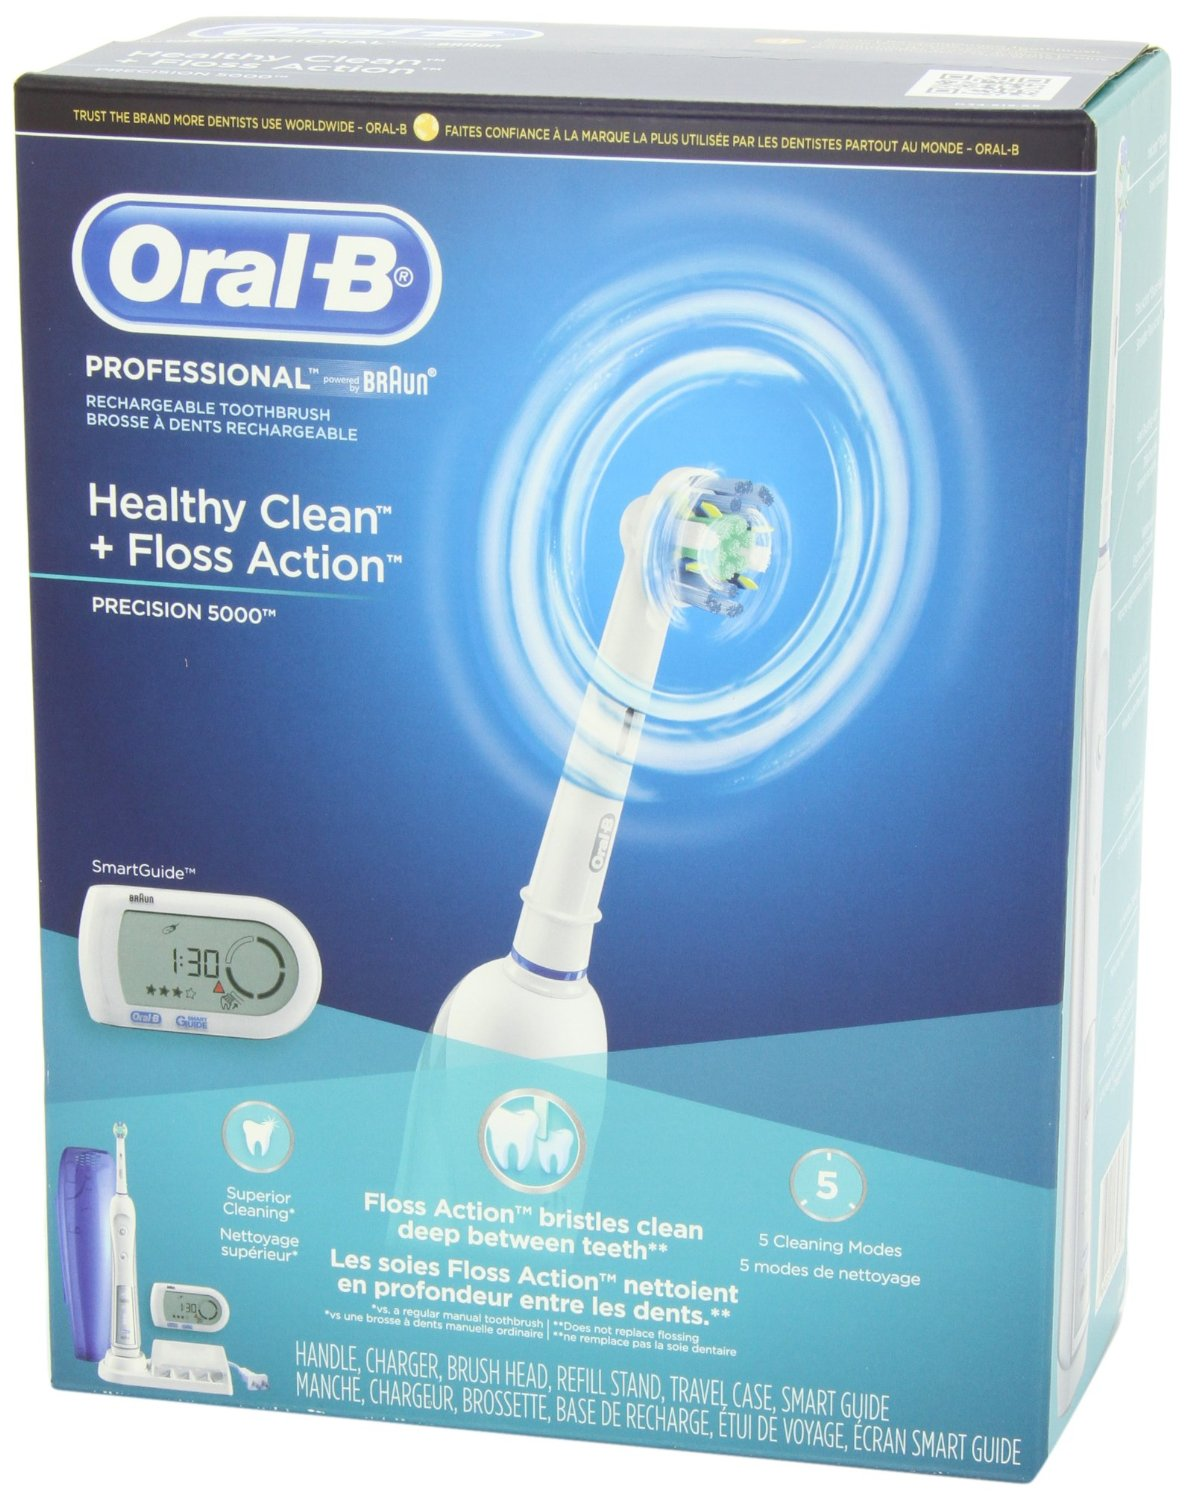 oral b smartseries 5000 a review rh toothbrush reviews com Braun Oral-B Toothbrush Replacement Heads Braun Oral-B Toothbrush Replacement Heads